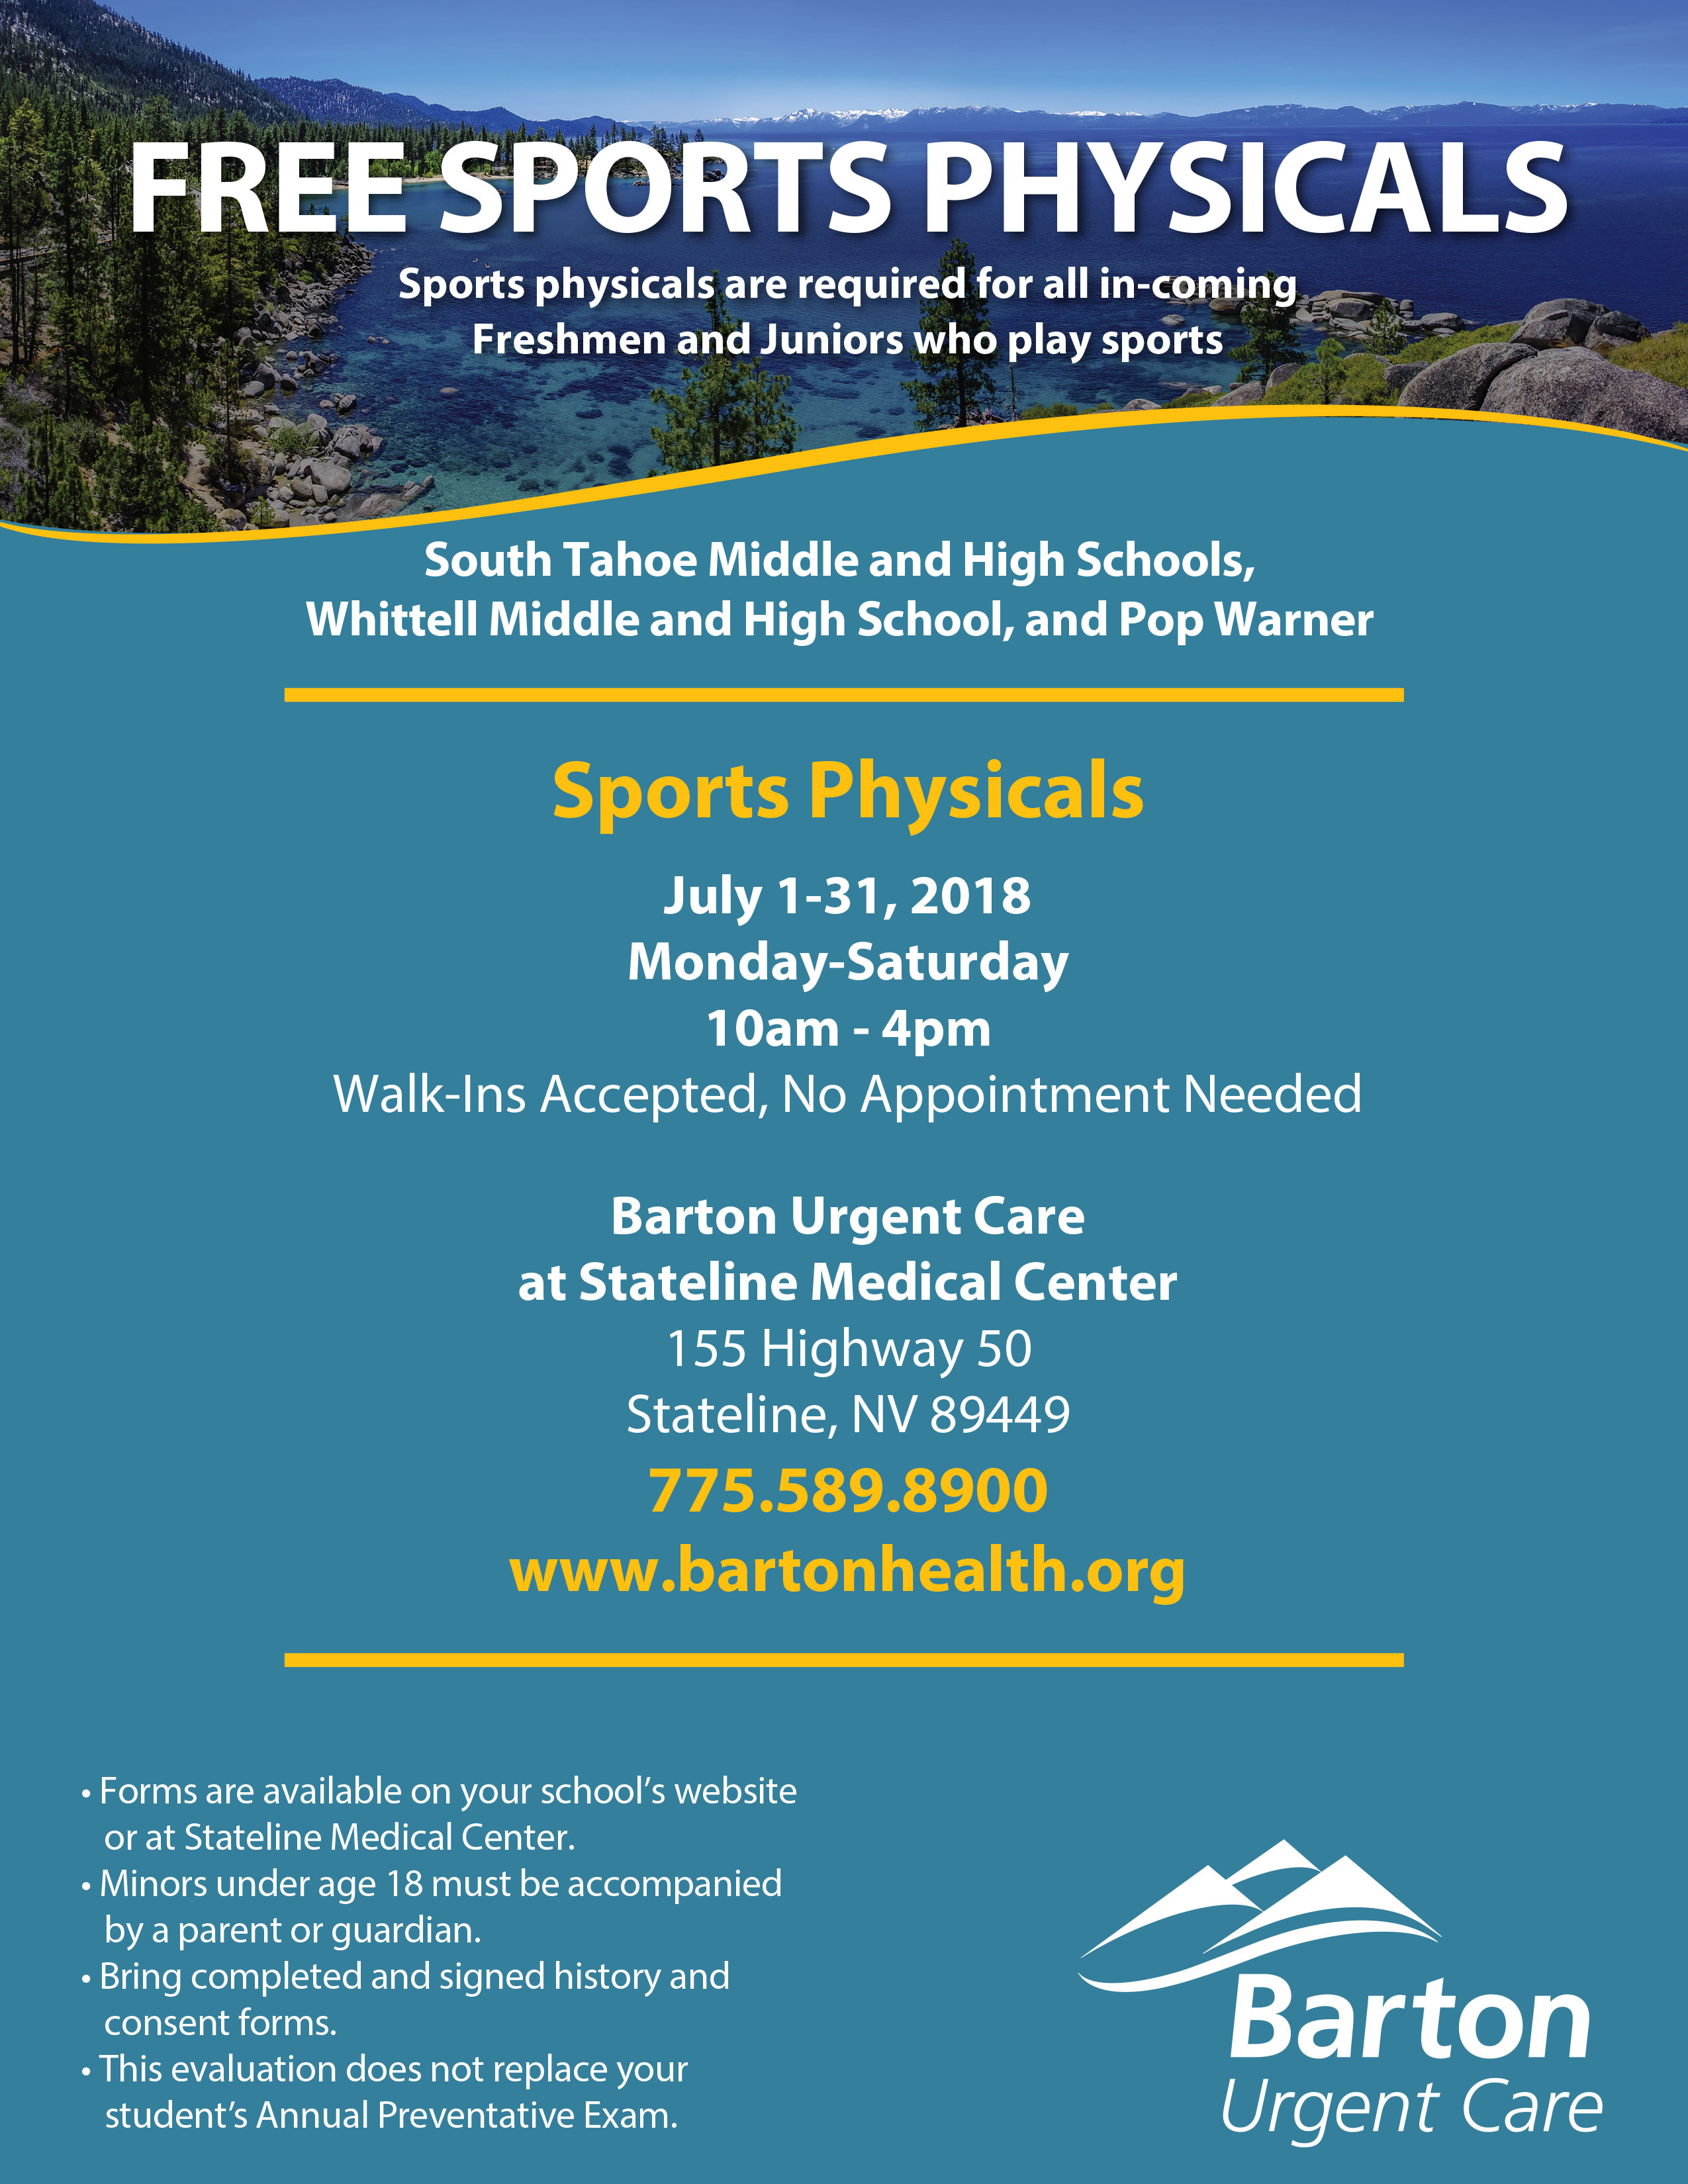 FREE SPORTS PHYSICALS Sports physicals are required for all in-coming Freshmen and Juniors who play sports South Tahoe Middle and High Schools, Whittell Middle and High School, and Pop Warner